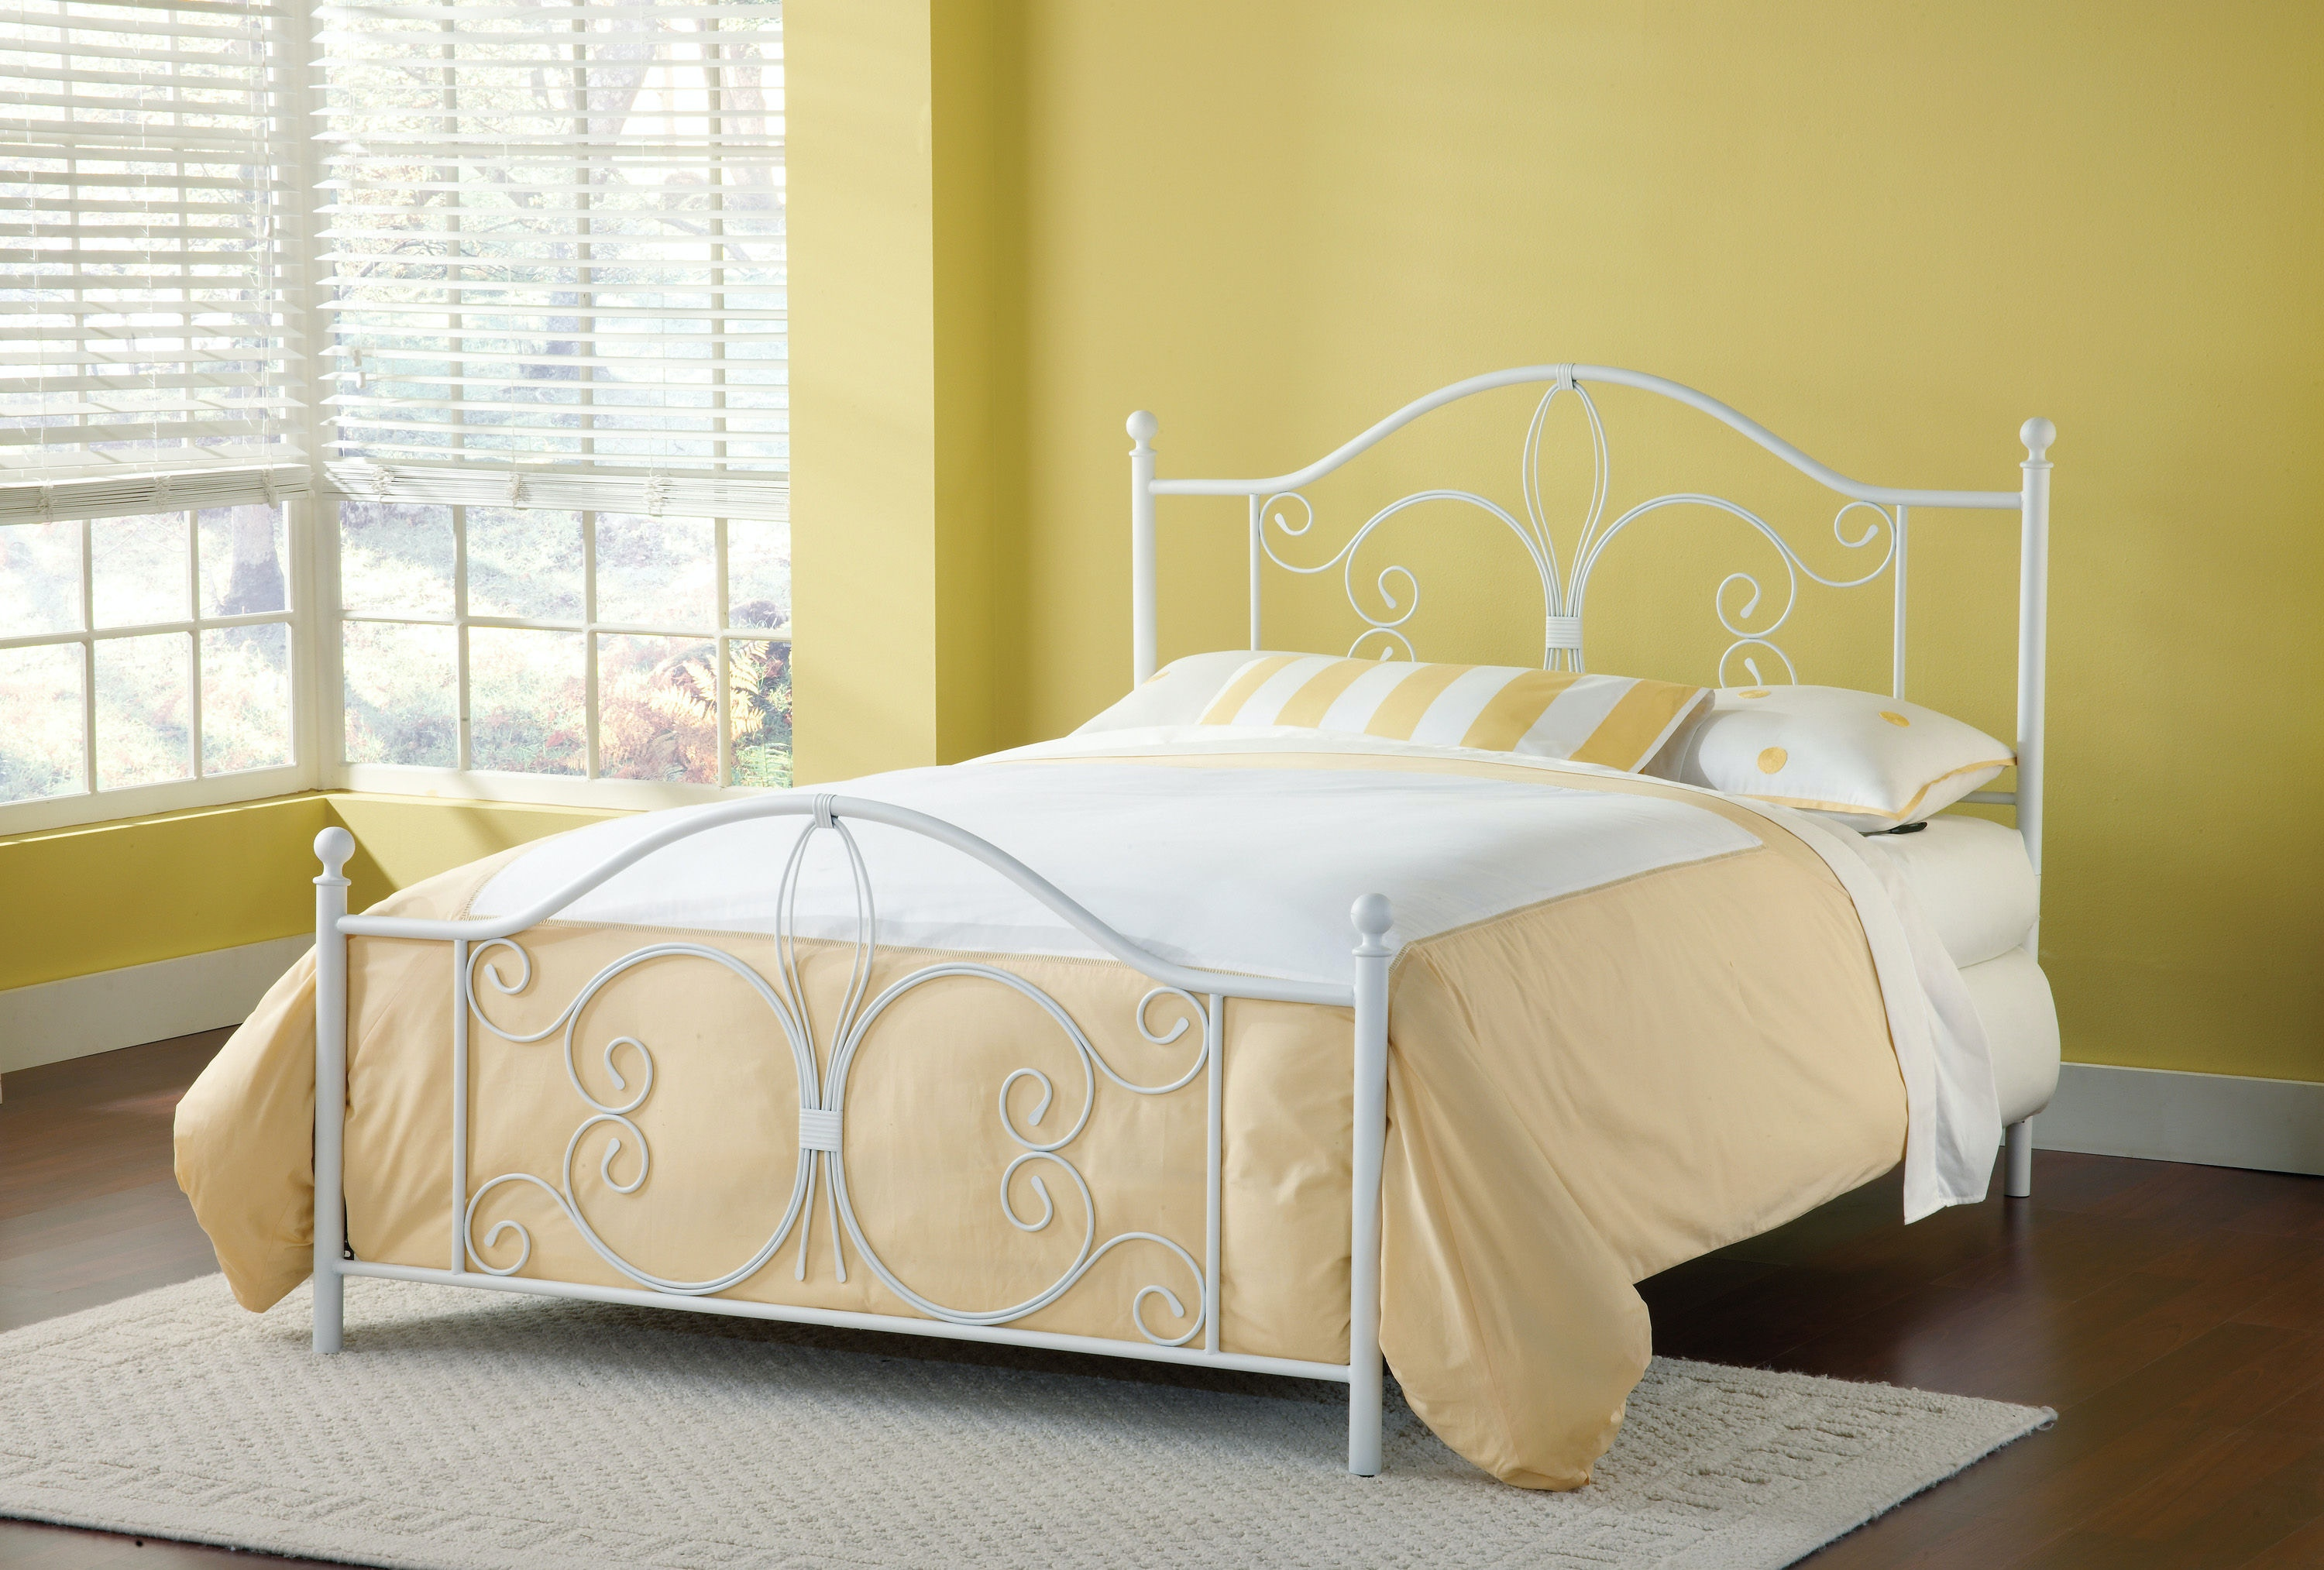 Hillsdale Furniture Bedroom Ruby Bed Set   Queen 1687 500   Furniture  Kingdom   Gainesville, FL